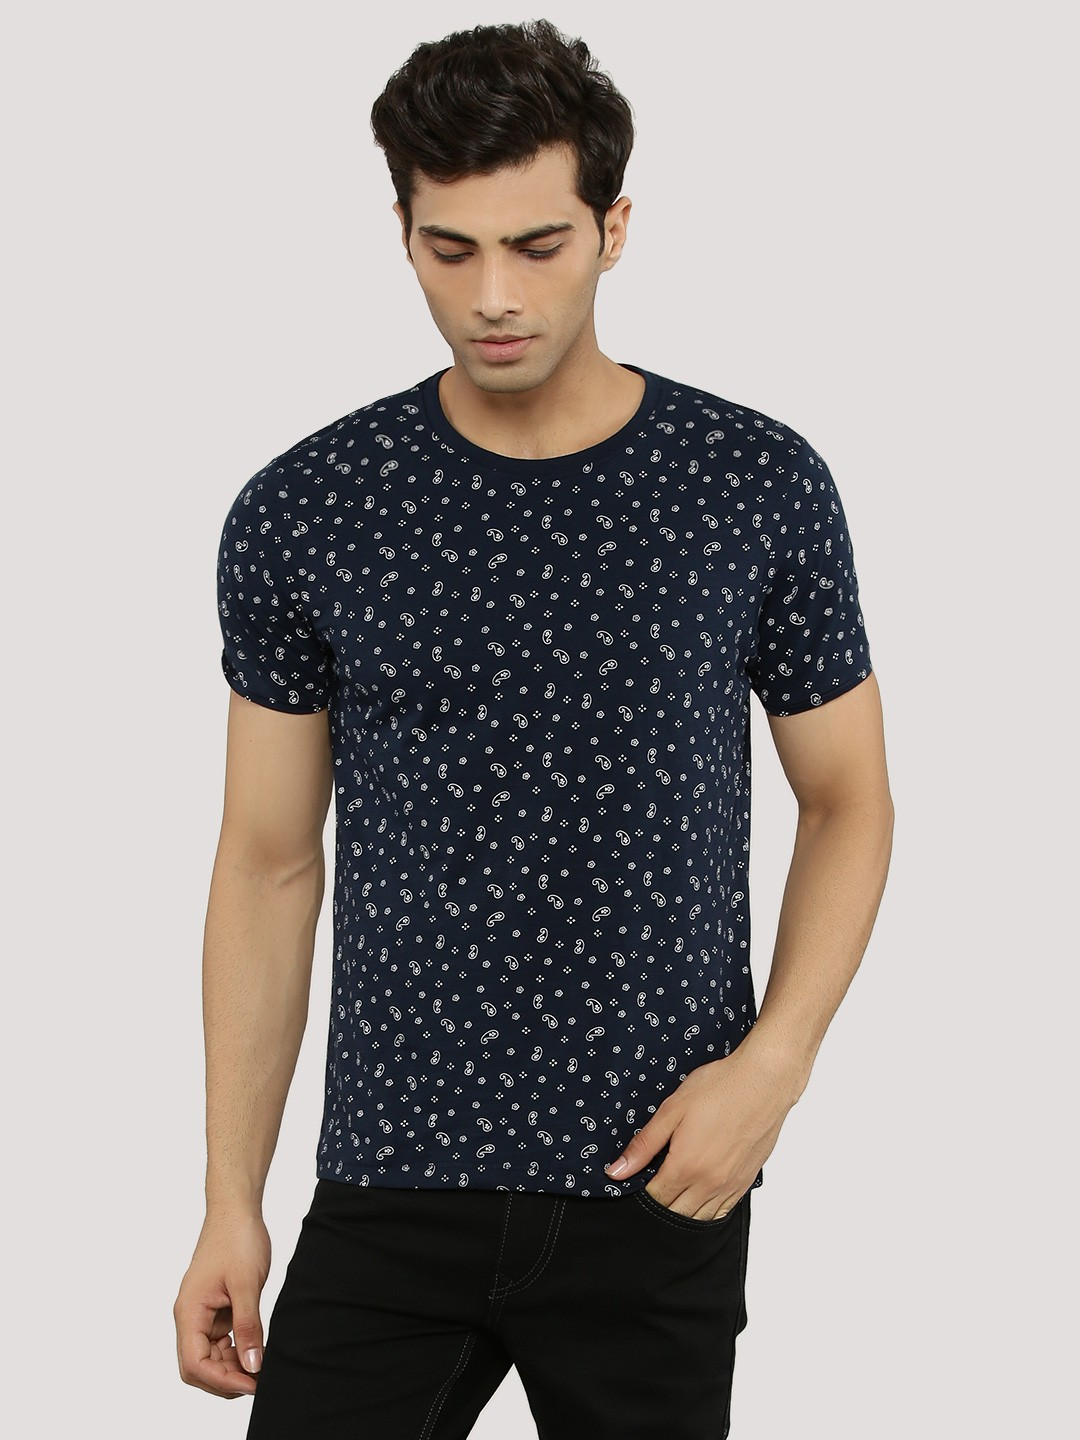 Buy flying machine paisley printed t shirt for men men 39 s for Printed t shirts india